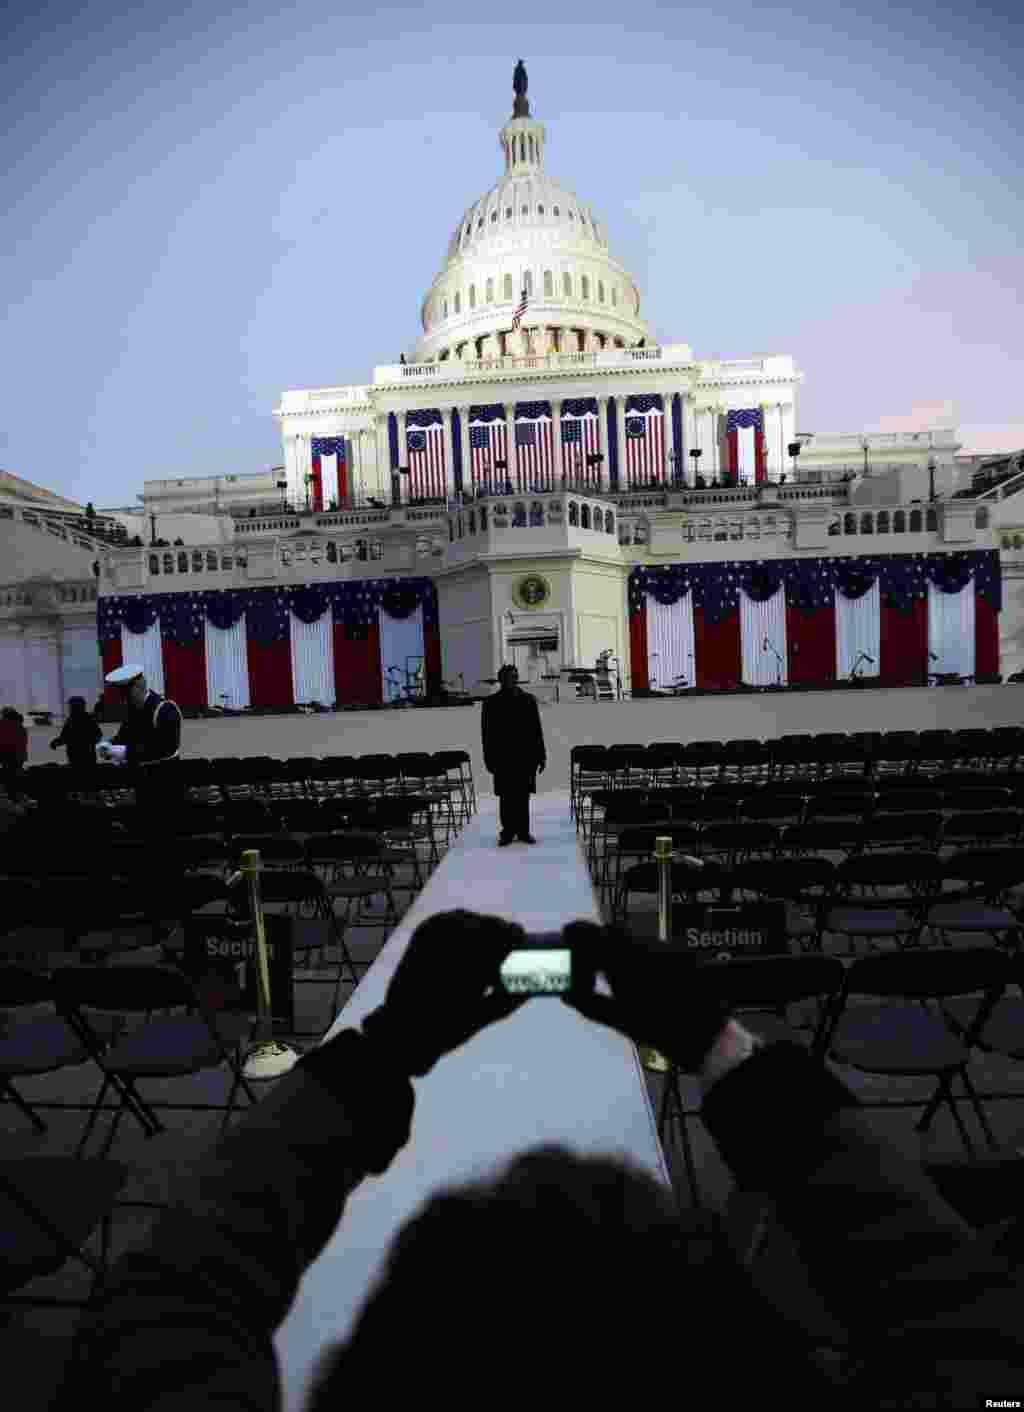 Guests at the Inauguration of the U.S. President Barack Obama take pictures before sunrise at the U.S. Capitol in Washington, January 21, 2013